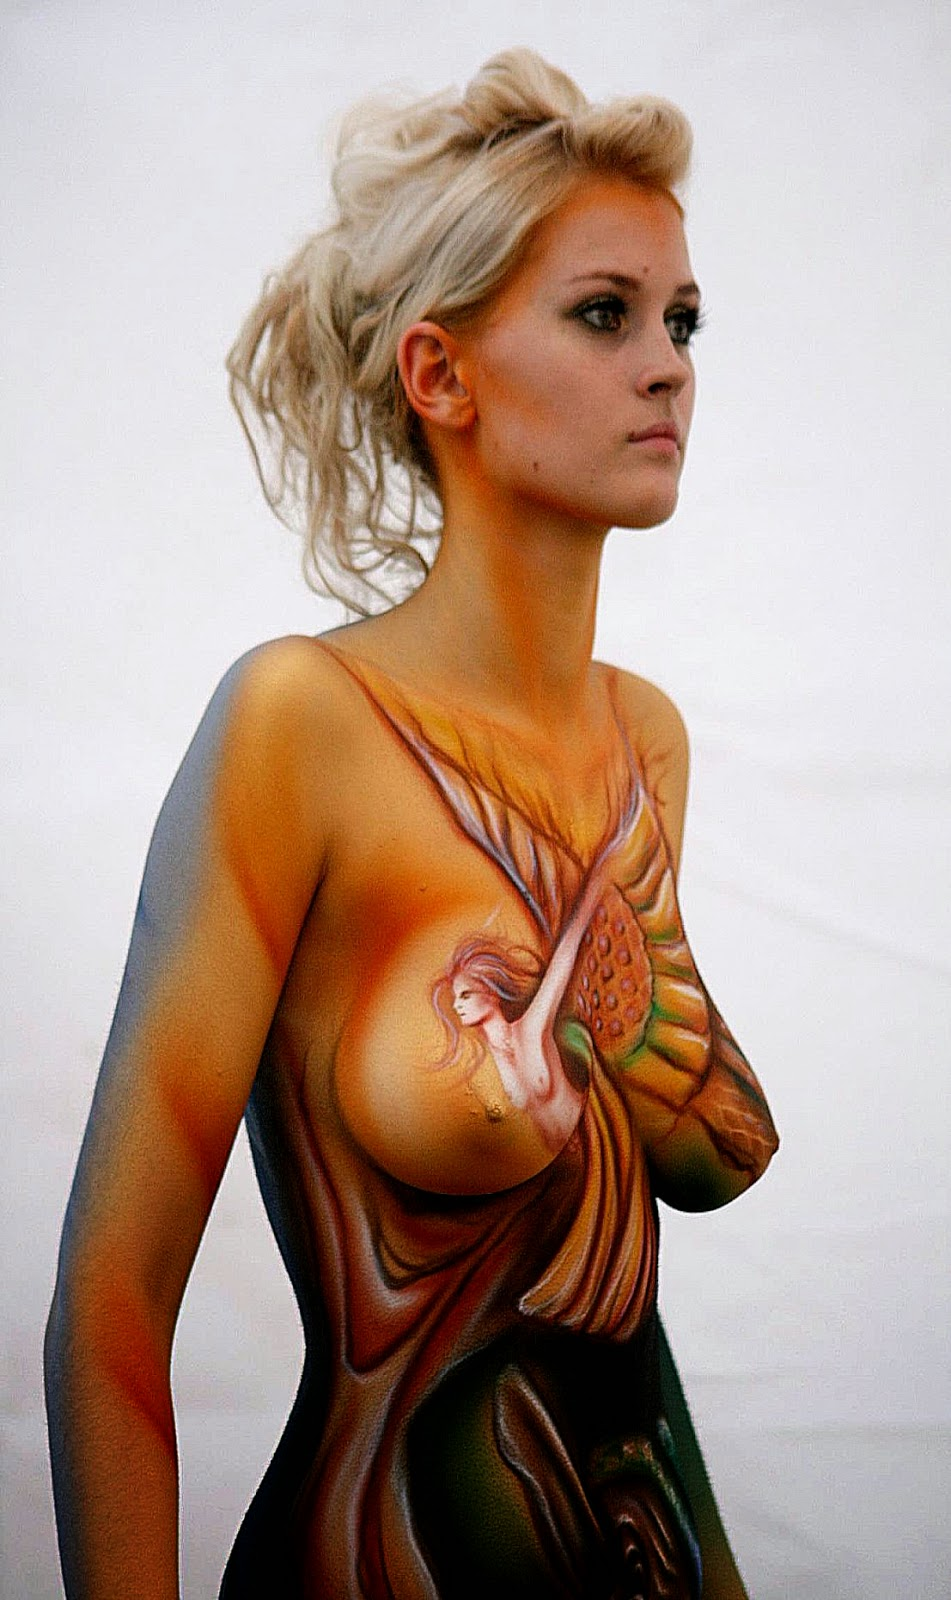 Naturist Body Painting : naturist, painting, Painting, Photos, Pictures